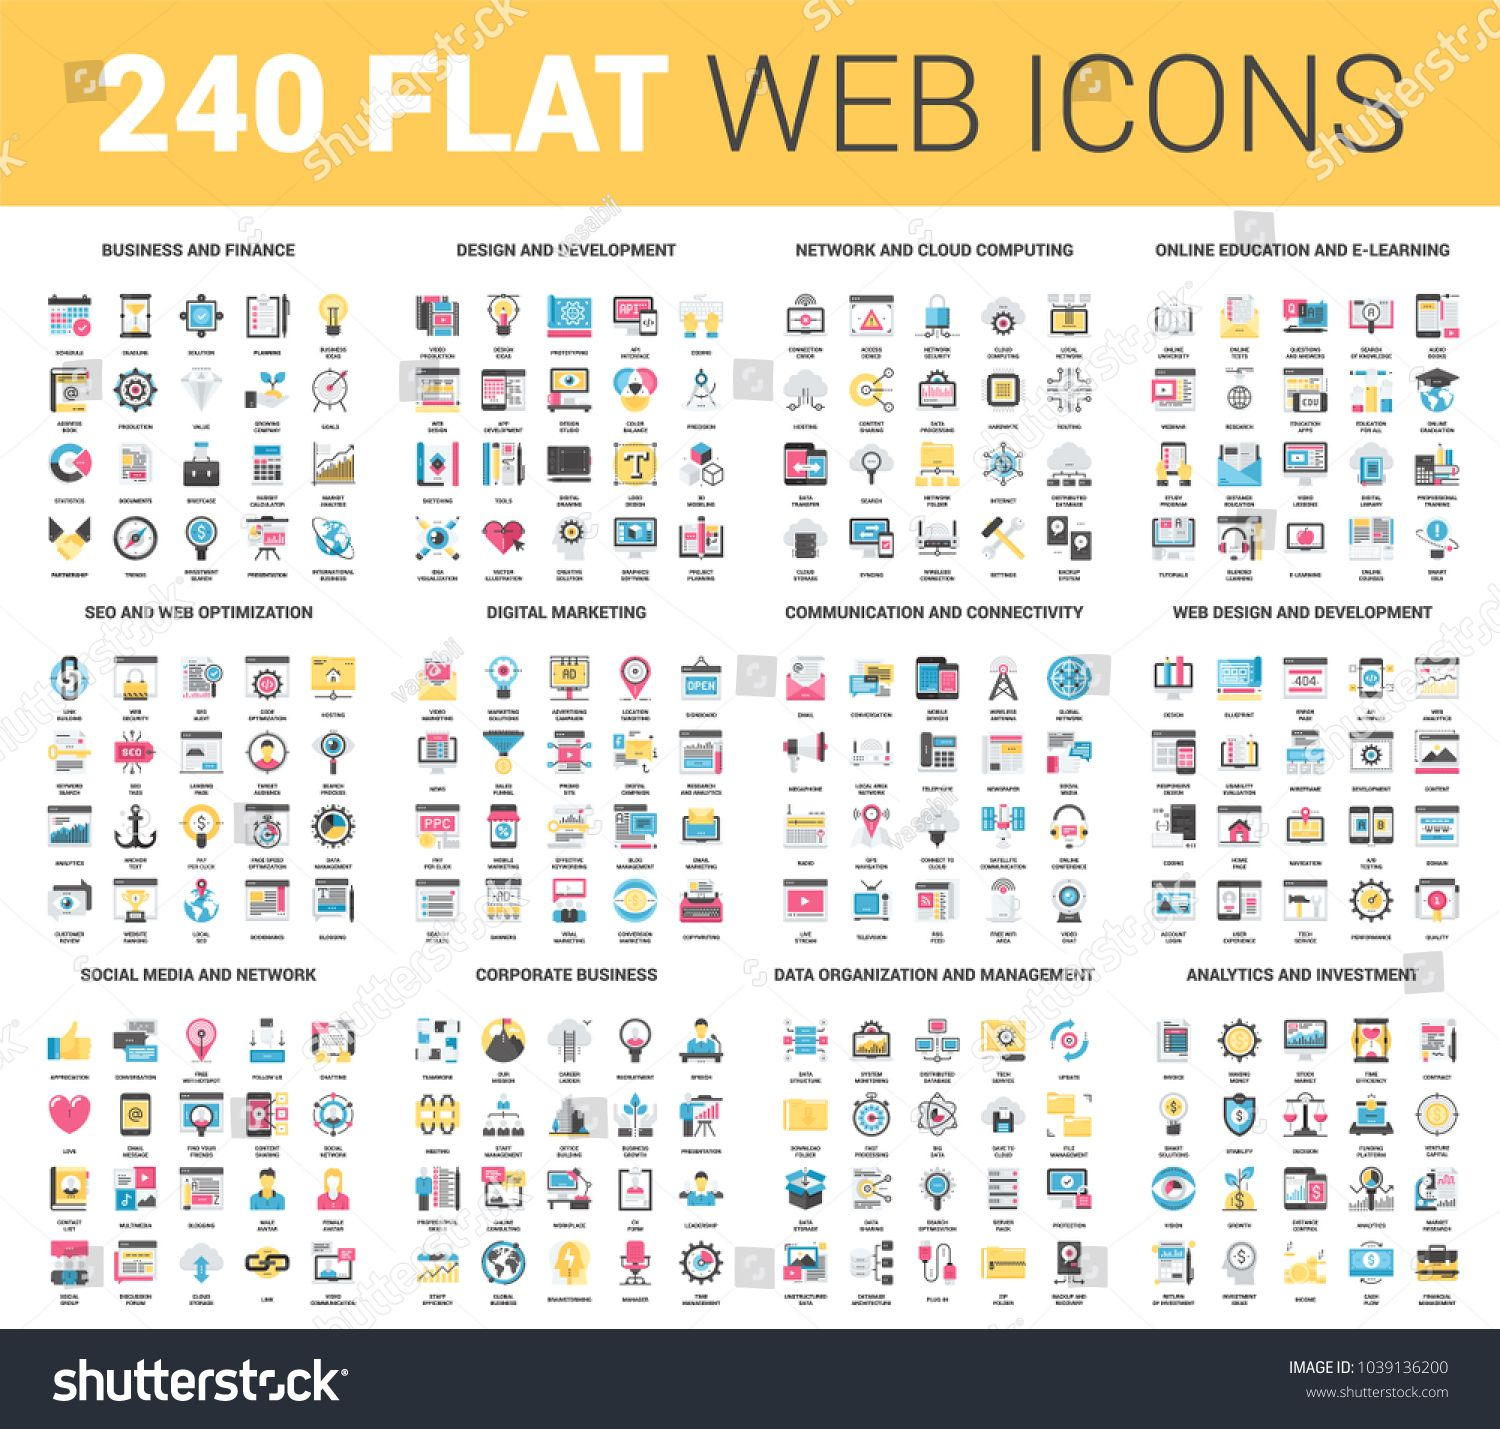 Vector Set Of 240 64X64 Pixel Perfect Flat Web Icons. Fully